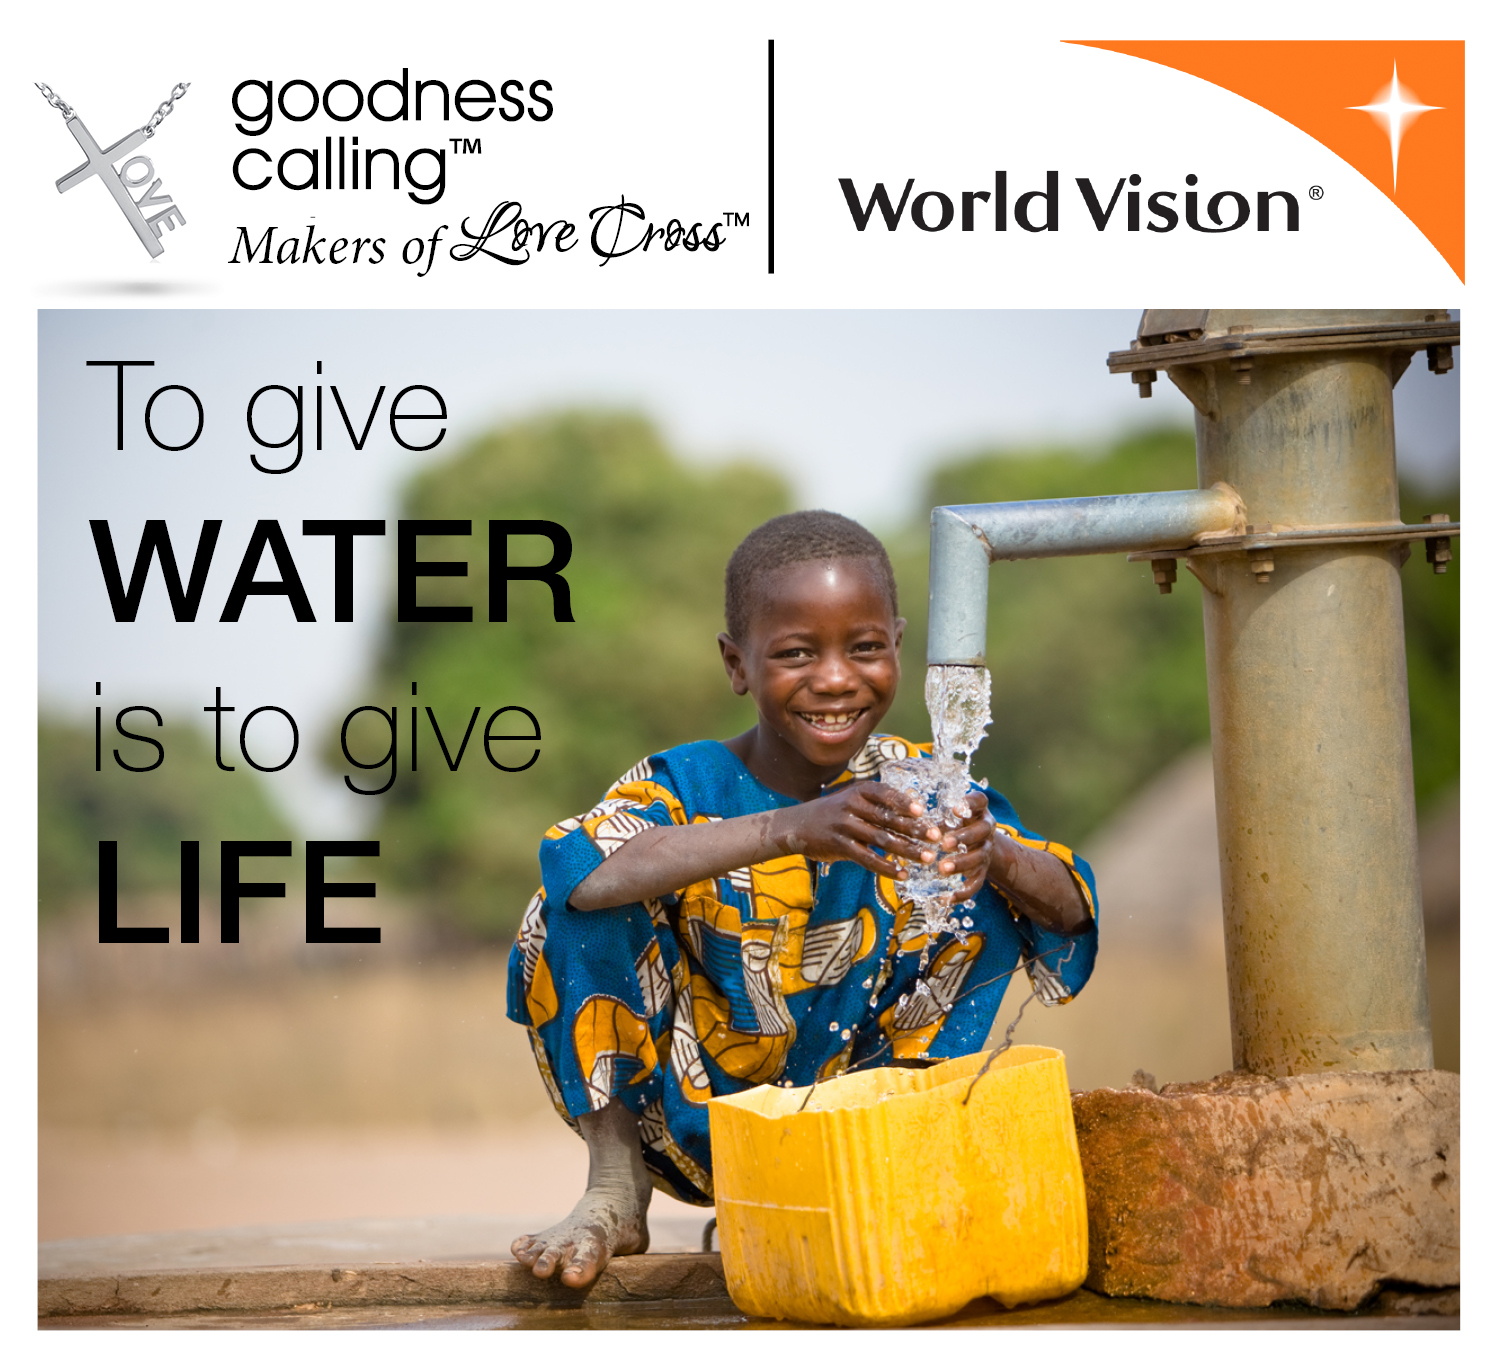 world-vision-partnership-4.jpg